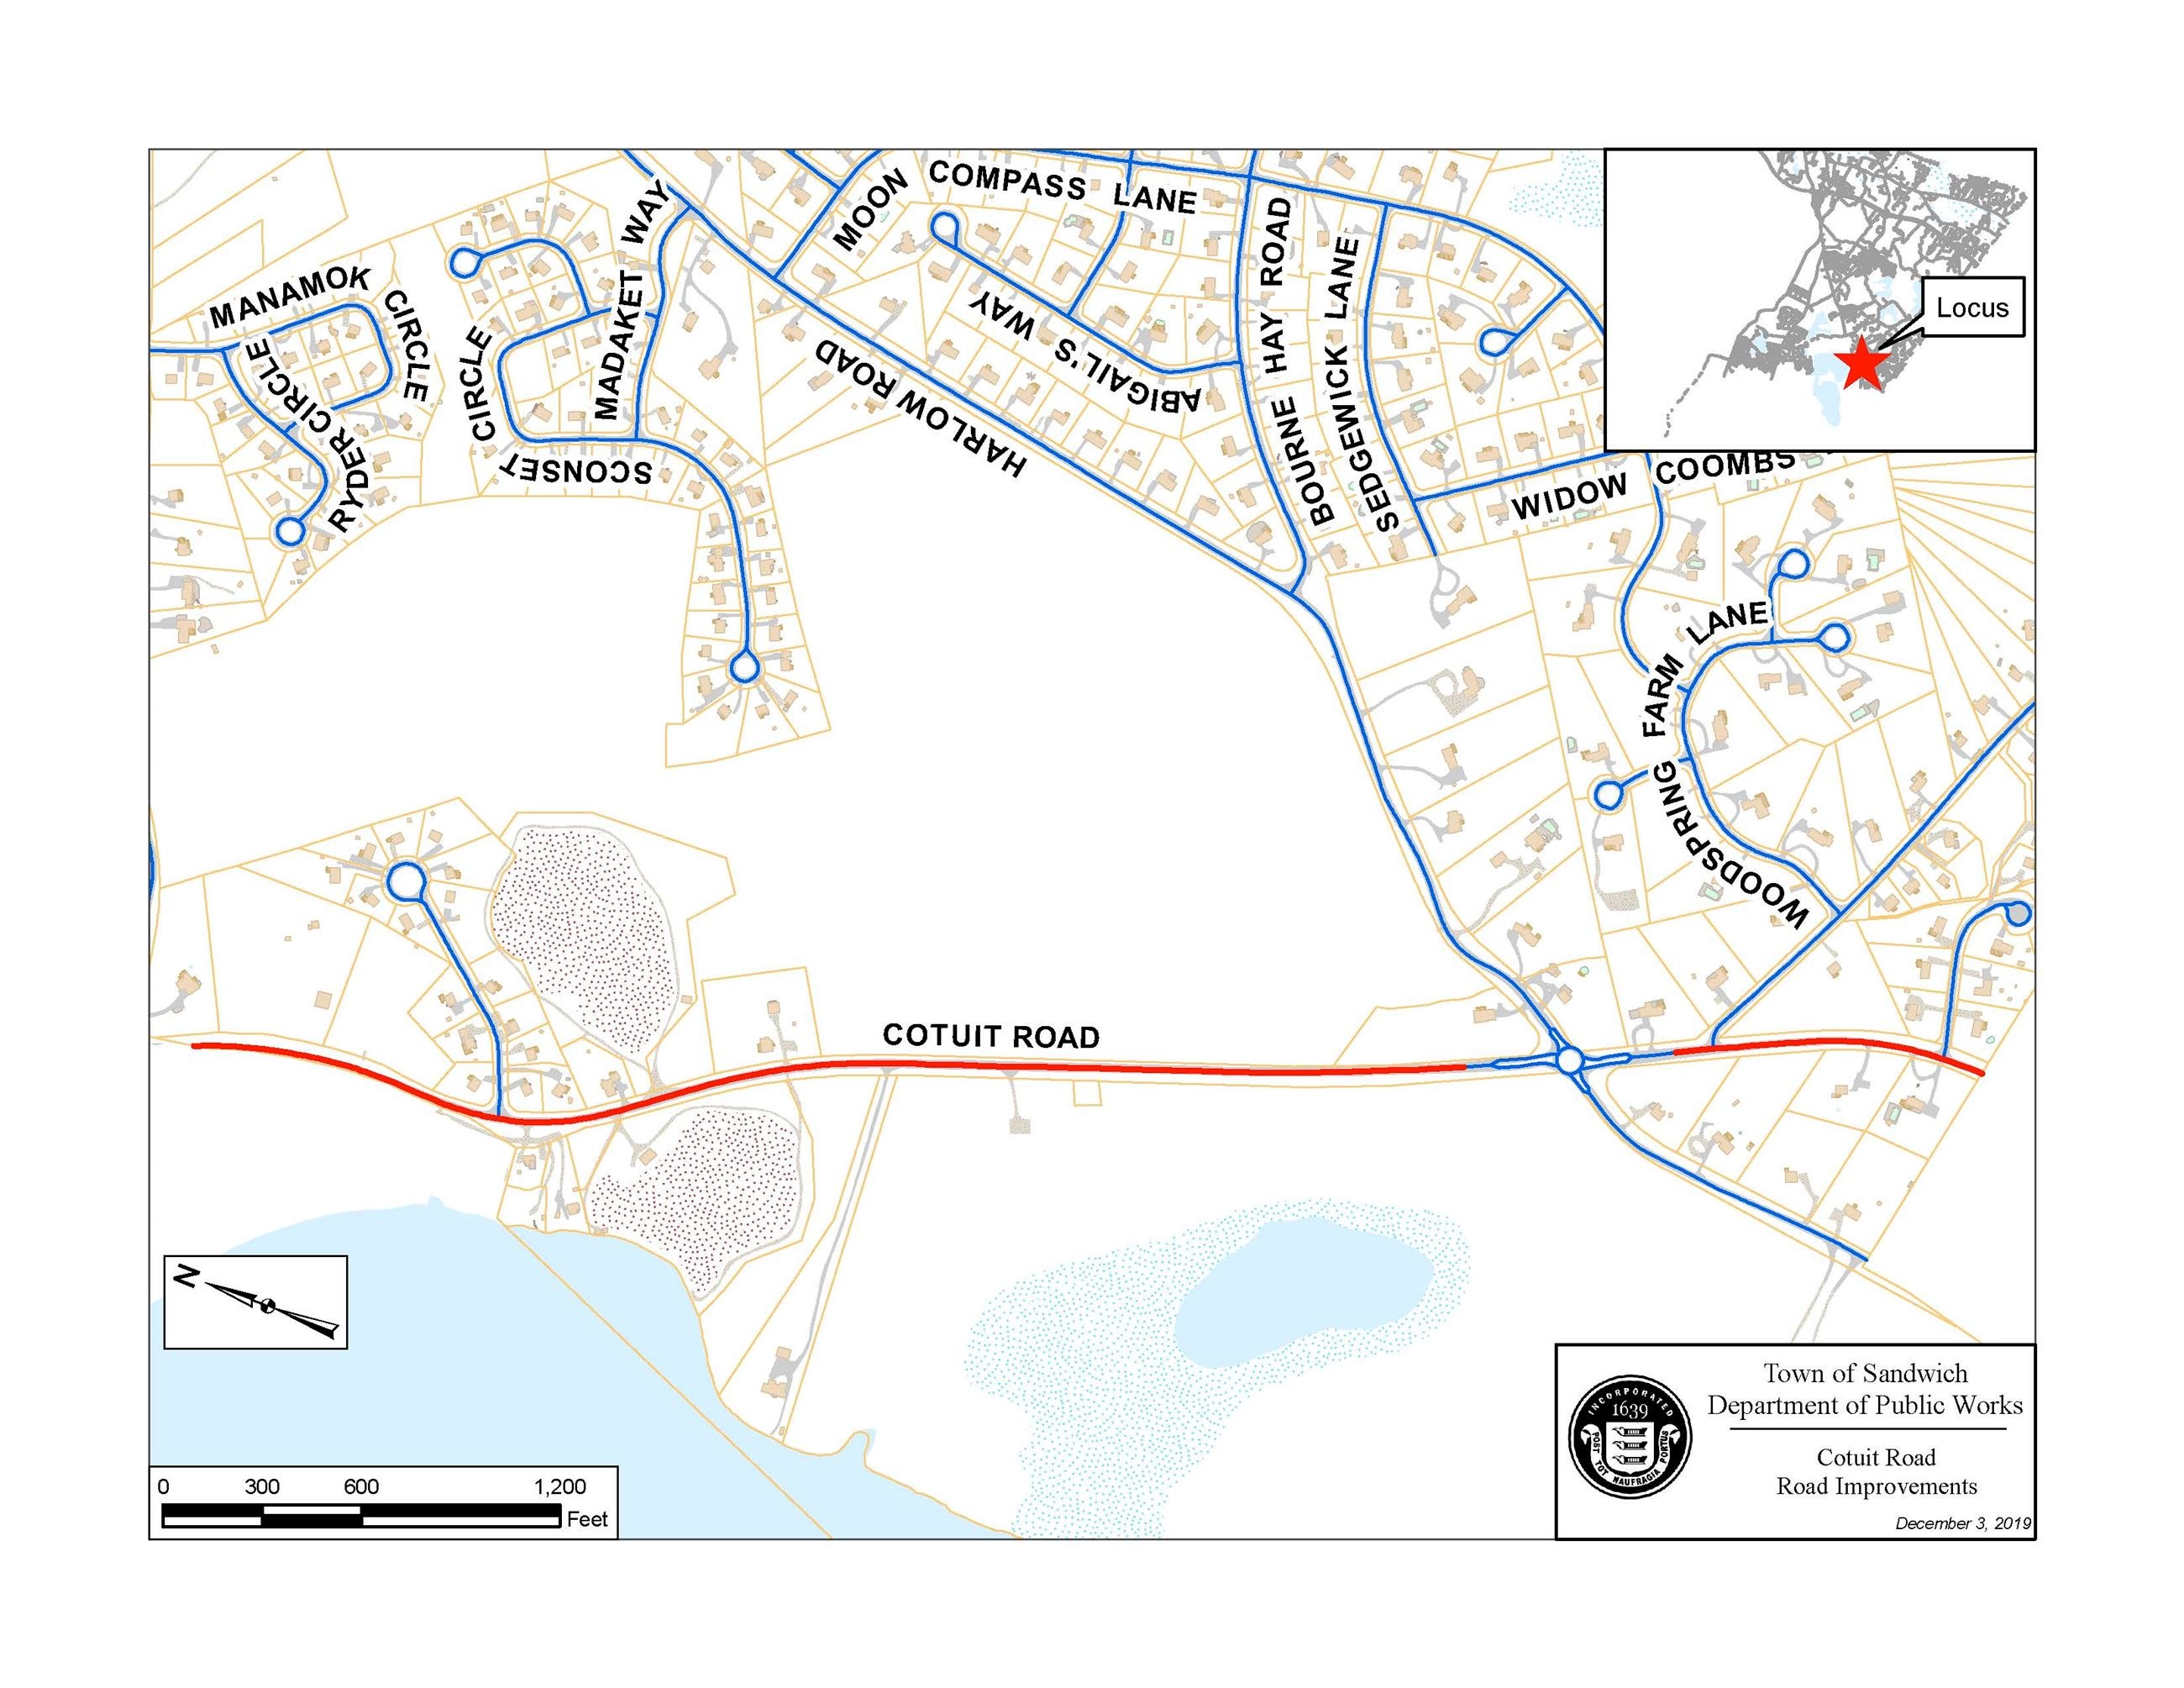 sketch_road improvements_cotuit